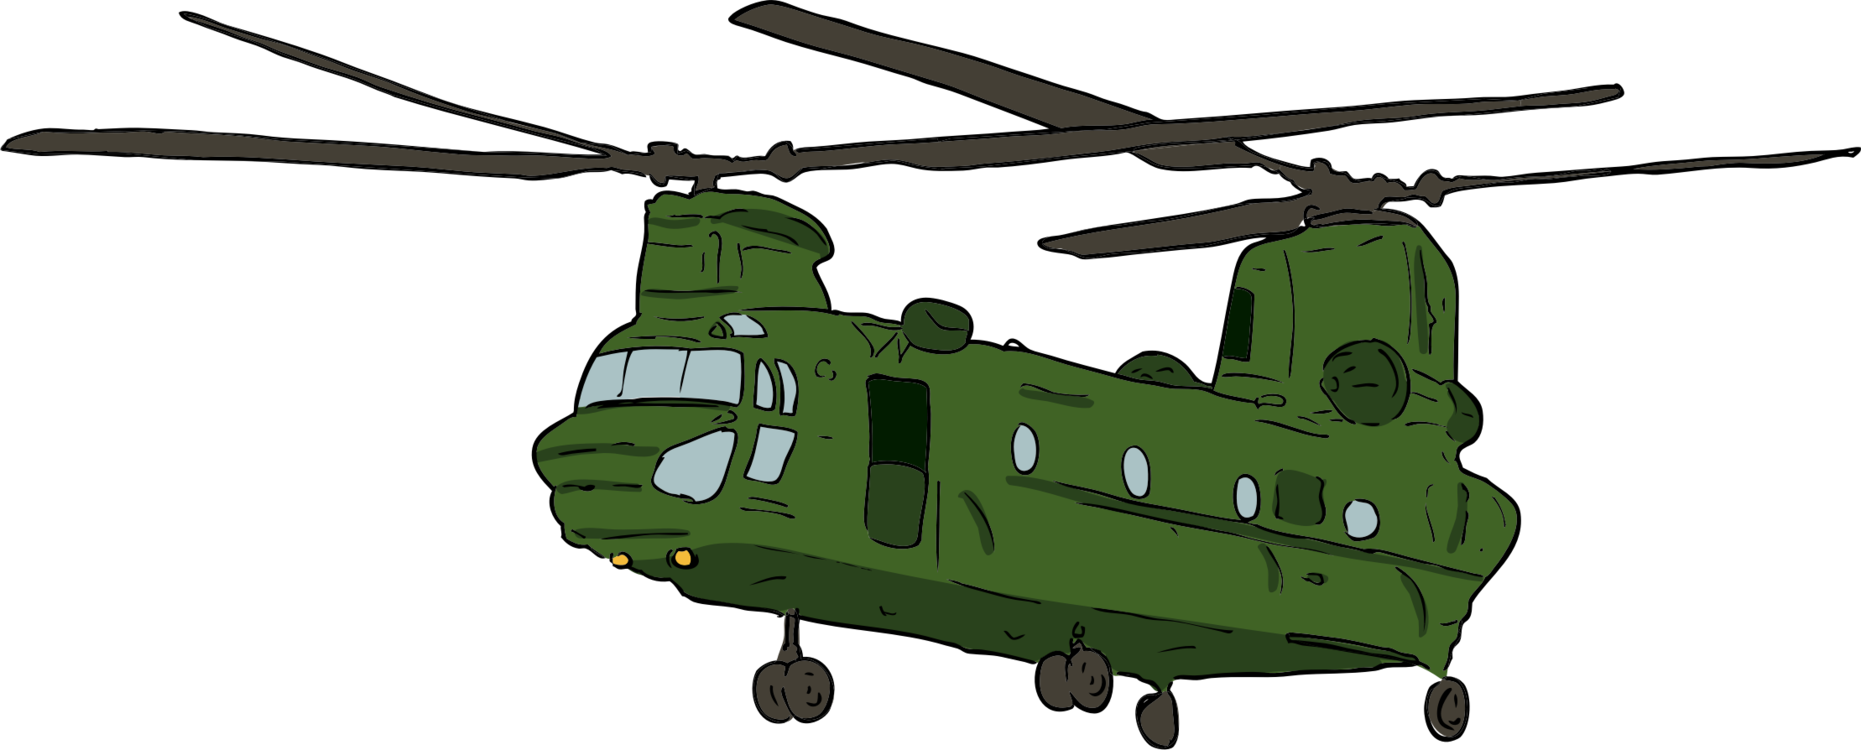 Helicopter Rotor,Rotorcraft,Military Helicopter Clipart.